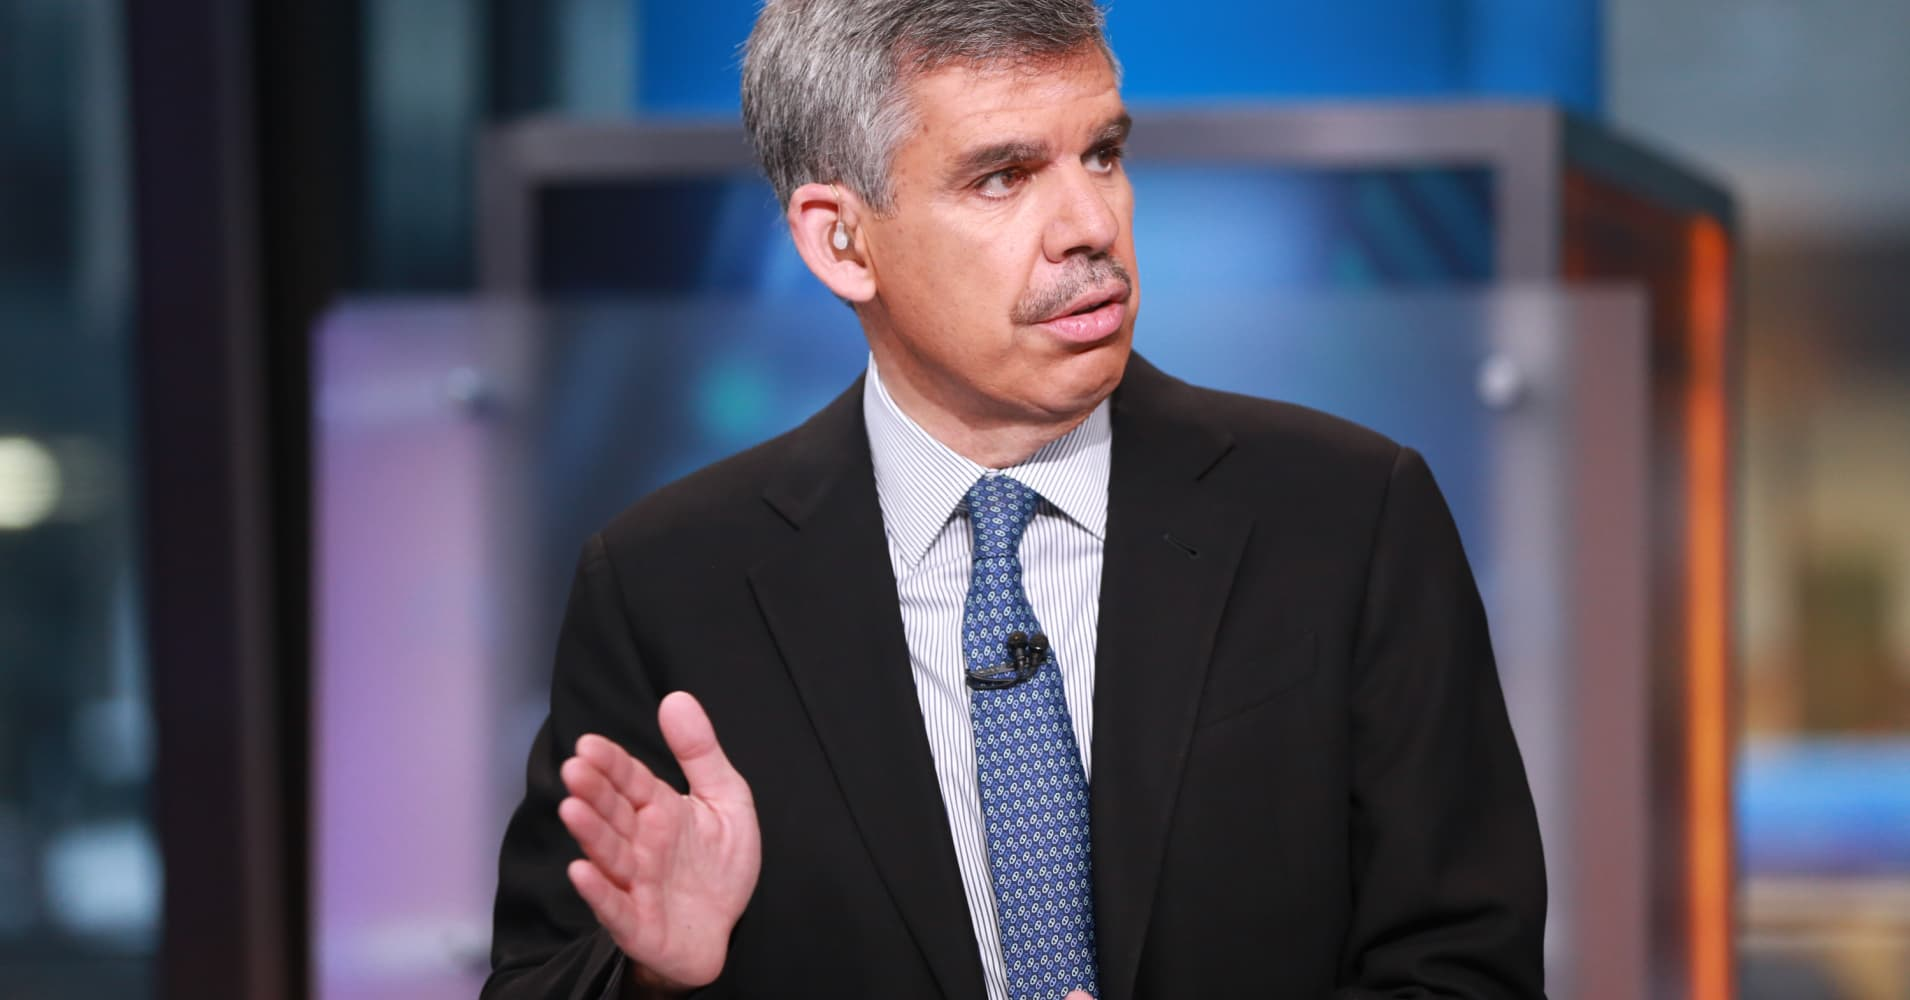 The Trump trade is taking a back seat in the stock rally, Mohamed El-Erian says